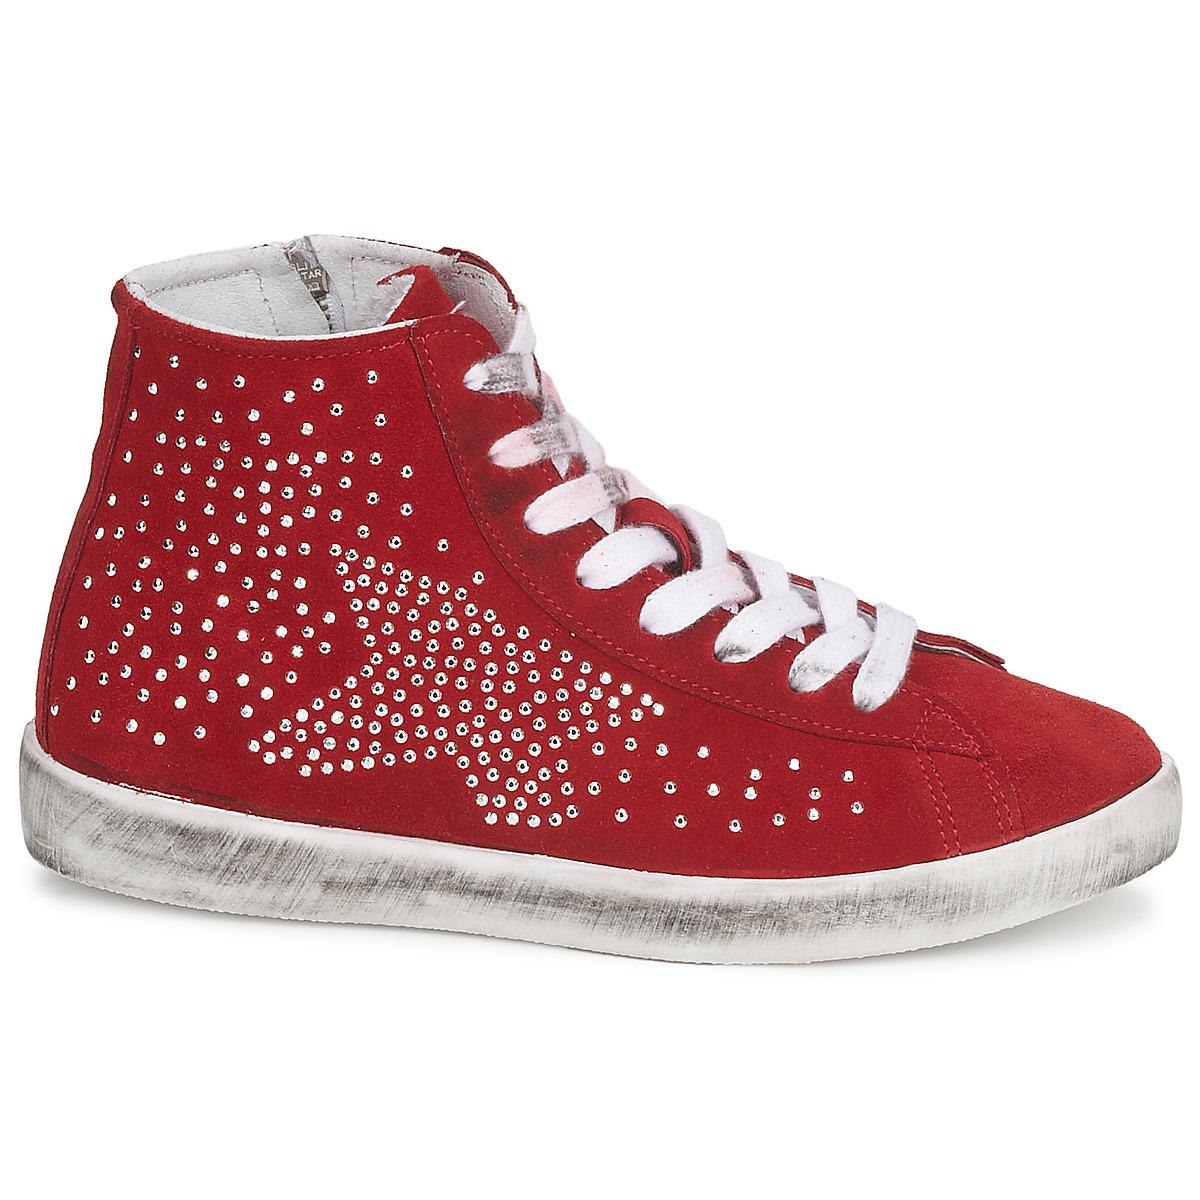 Yurban Guiver Women's Shoes (high-top Trainers) In Red